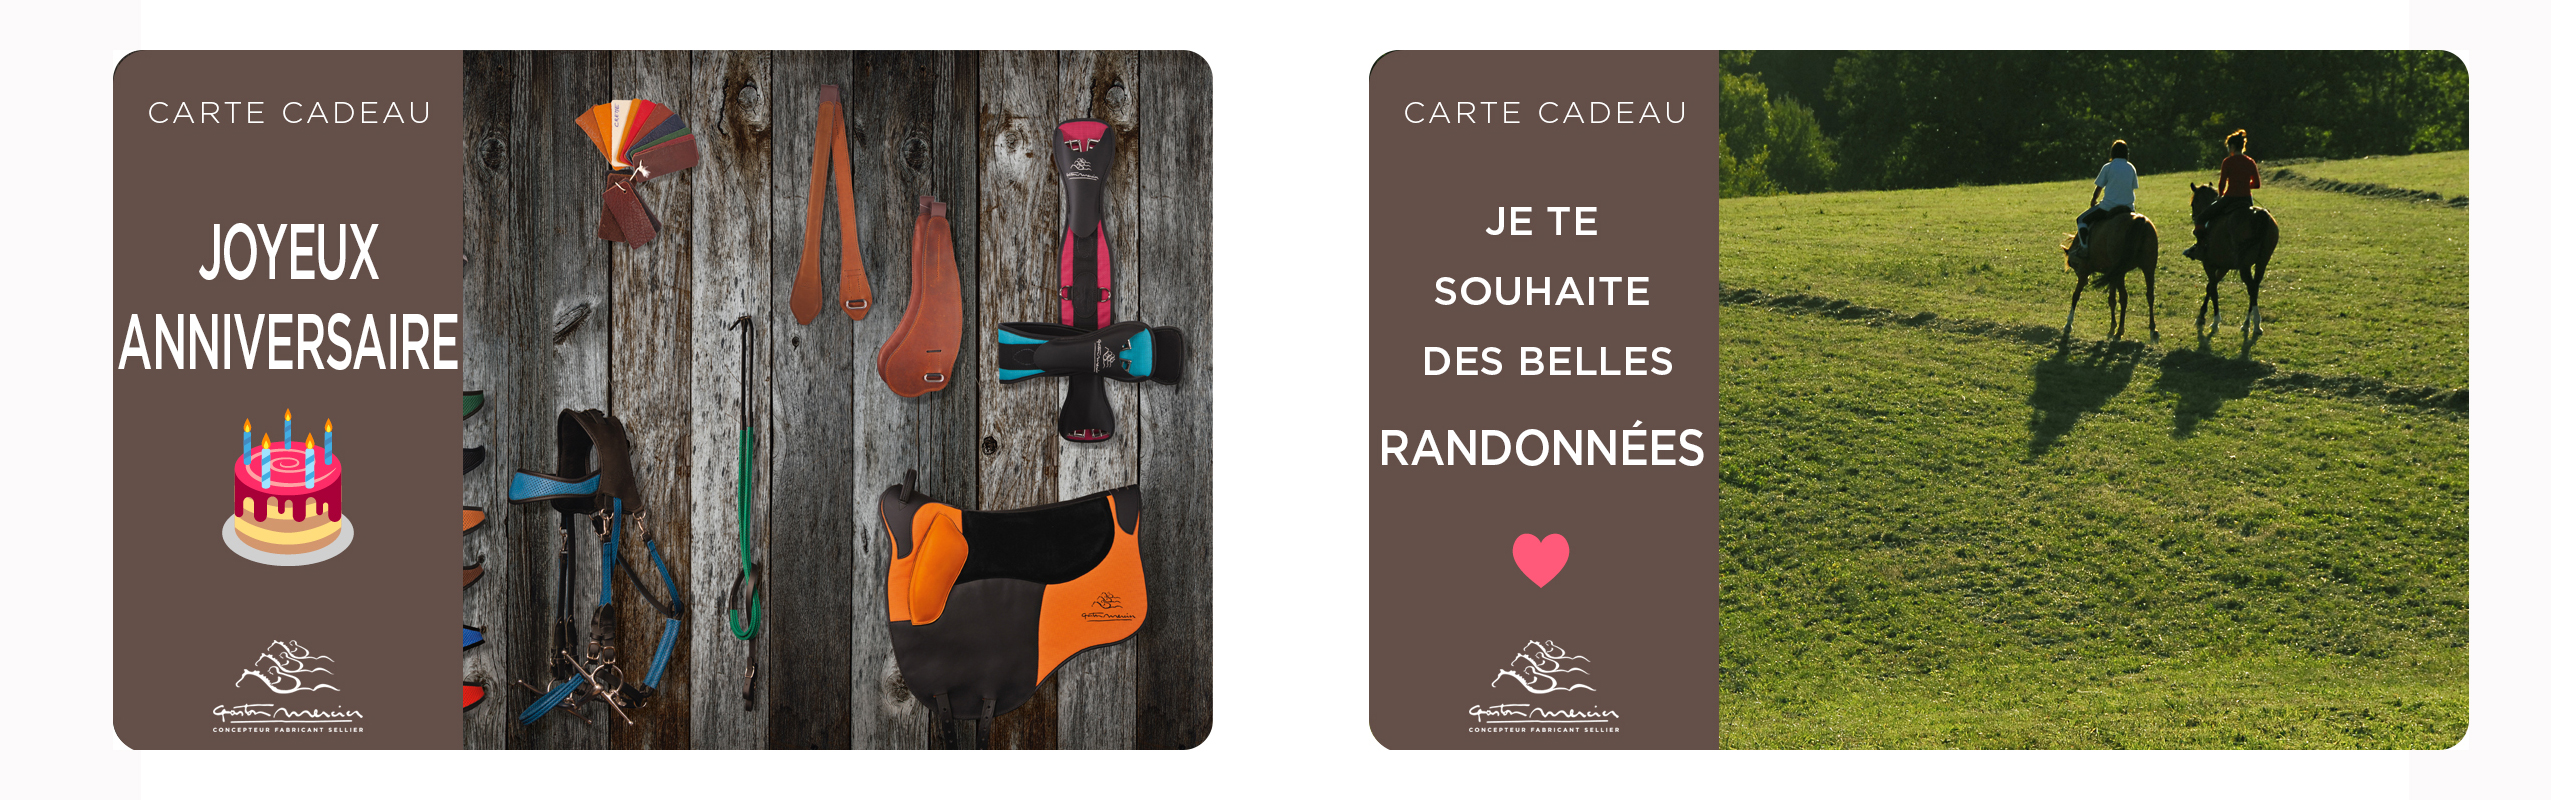 Carte Cadeau Gaston Mercier